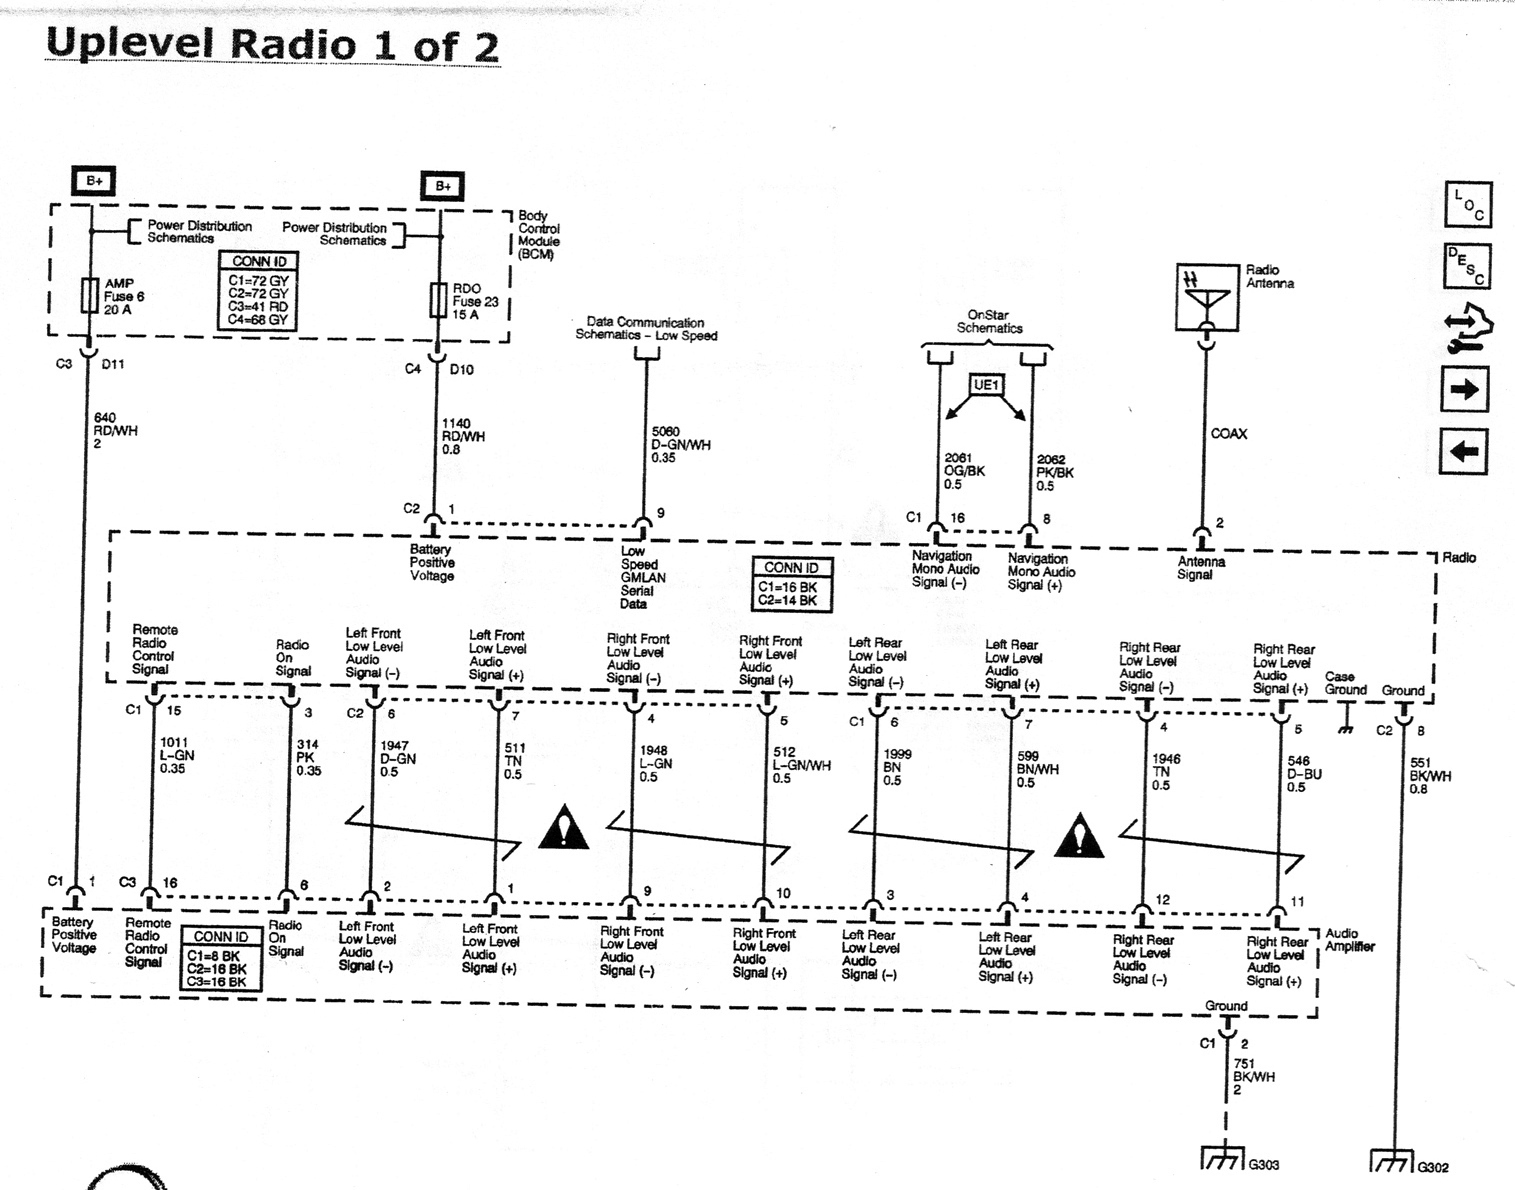 29801 monsoon amp speaker replacement monsoon_wiring_diagram_page_1 volkswagen monsoon wiring diagram wiring diagram simonand firebird monsoon wiring diagram at virtualis.co